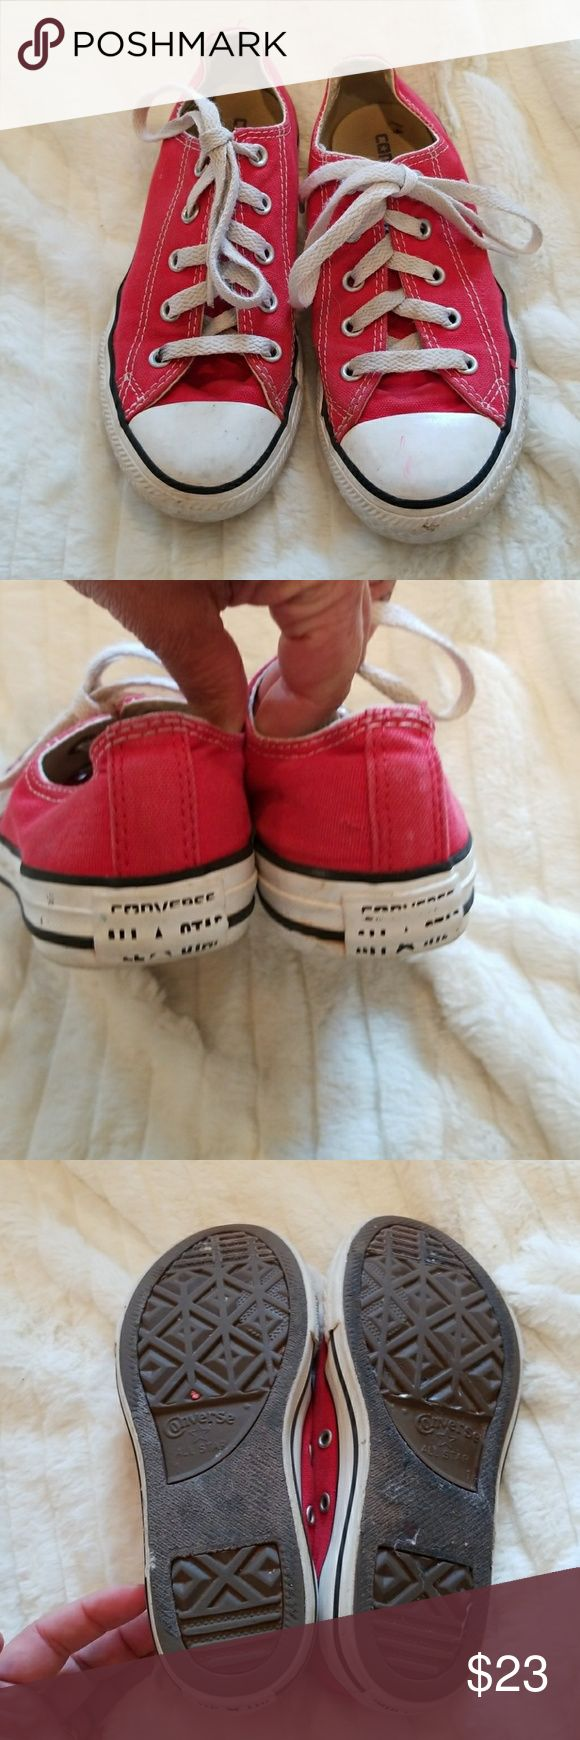 CONVERSE RED LOW TOPS UNISEX Good condition red CONVERSE for girls or boys. Converse Shoes Sneakers